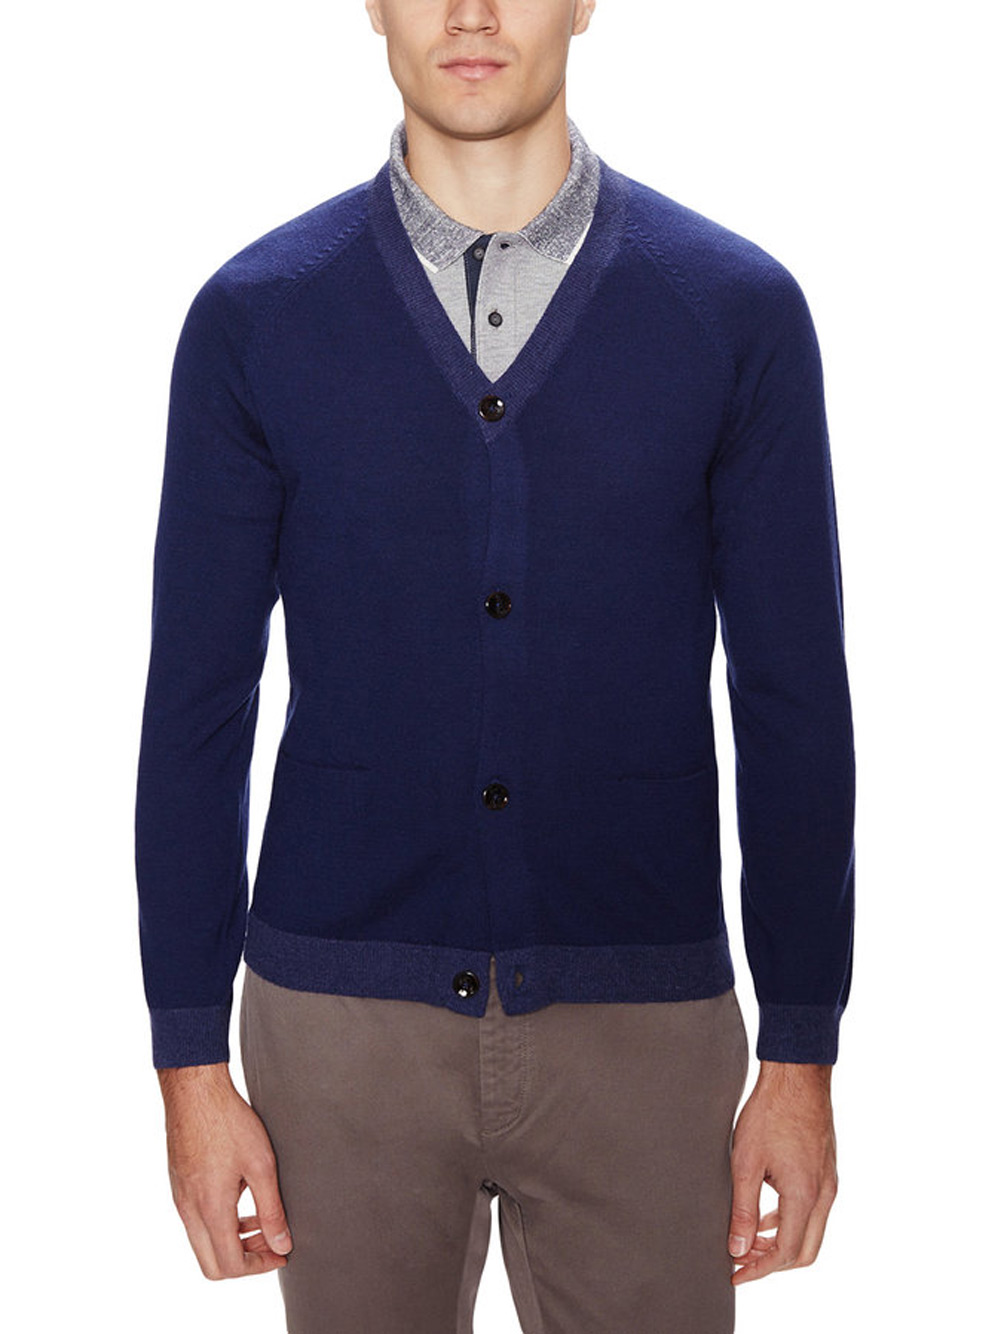 SURFACE TO AIR Men's Bright Blue Icarus Cardigan Sweater $260 NEW ...